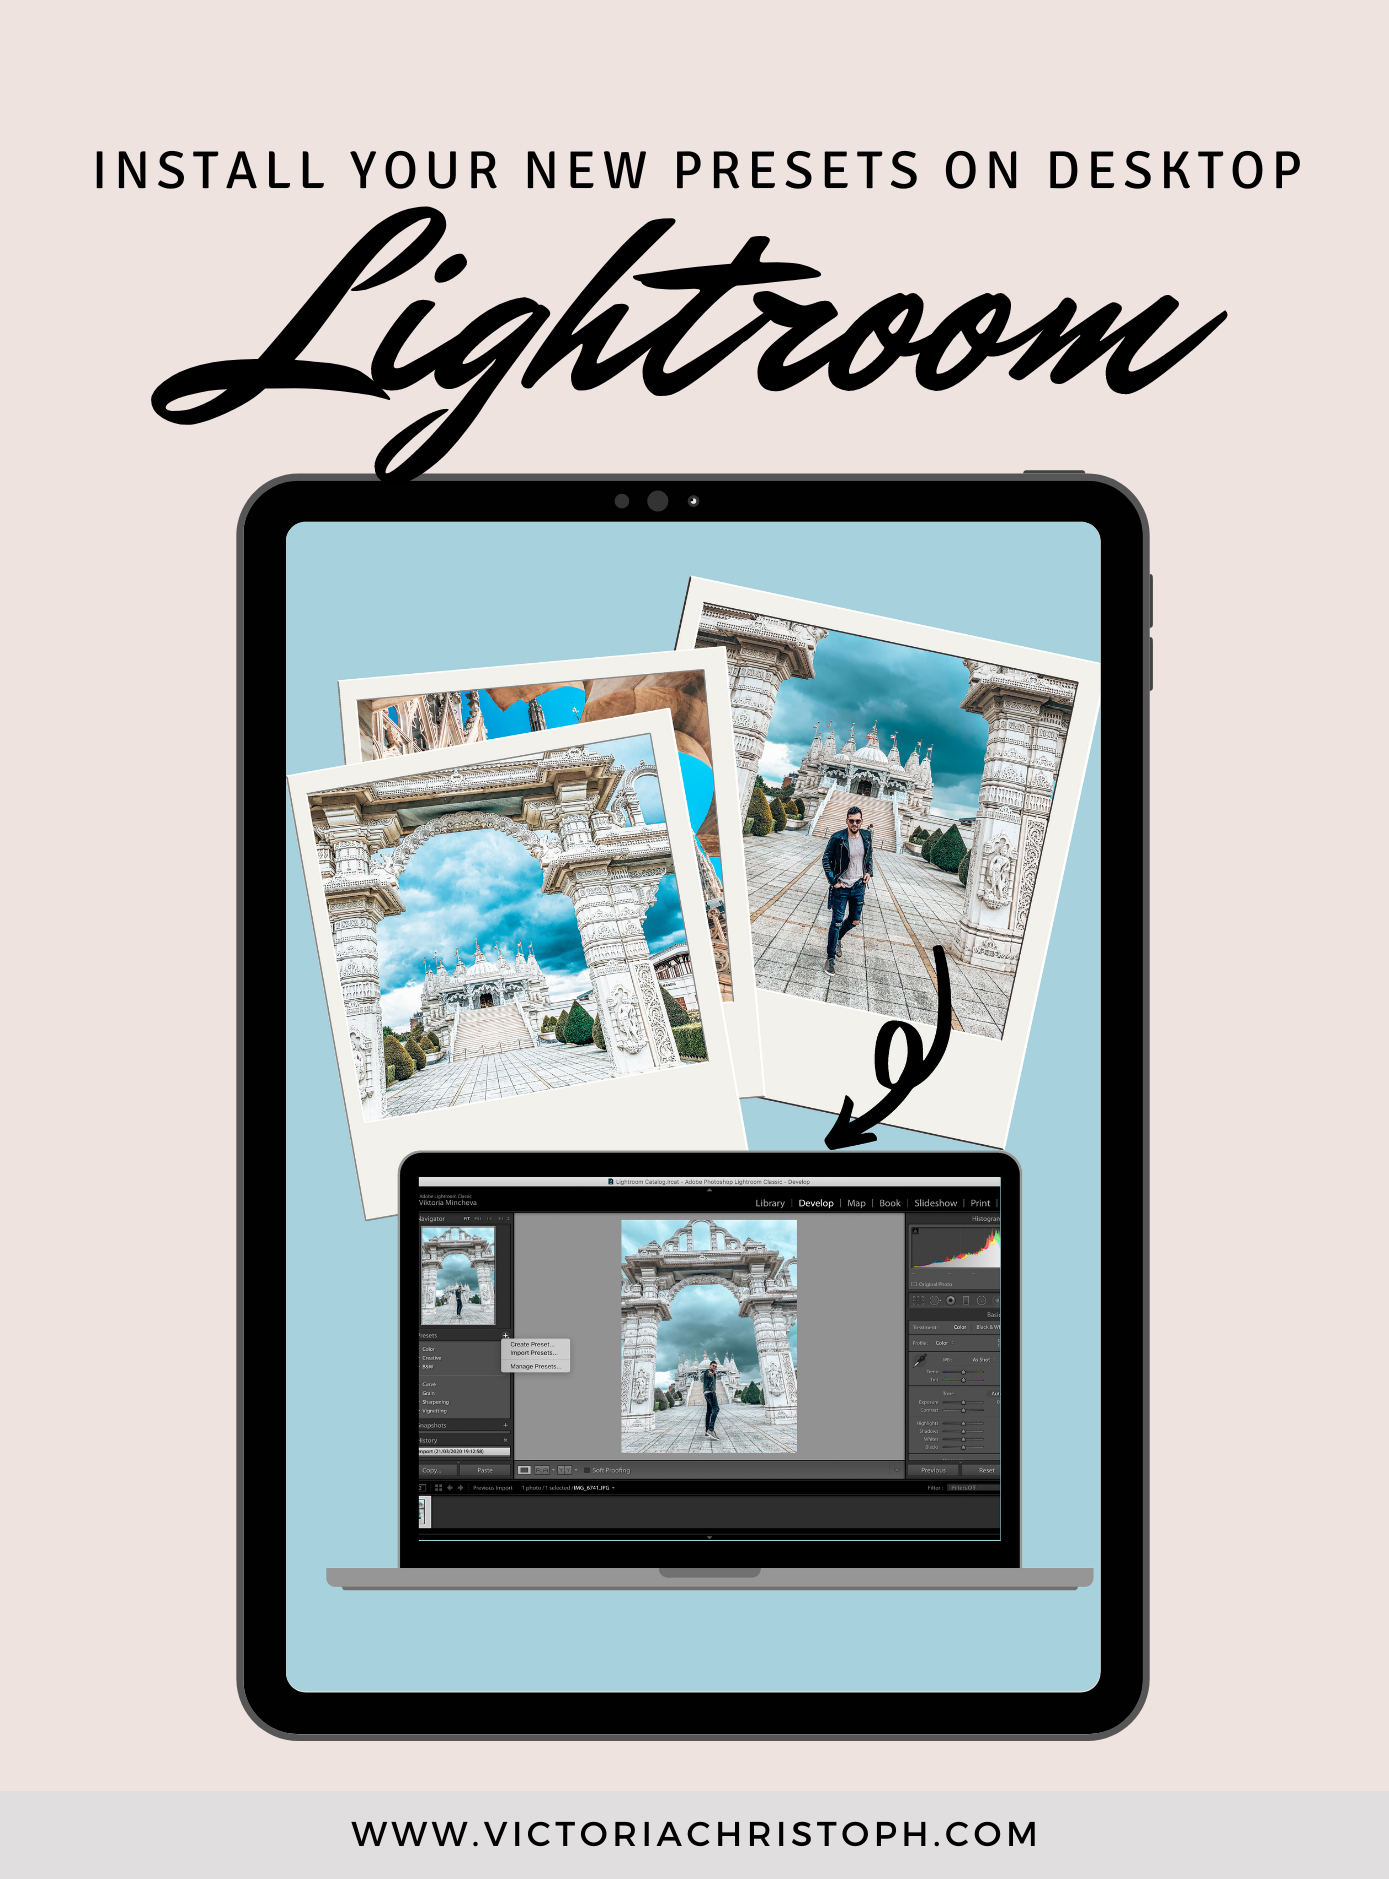 How to Install your New Lightroom Presets on Desktop?